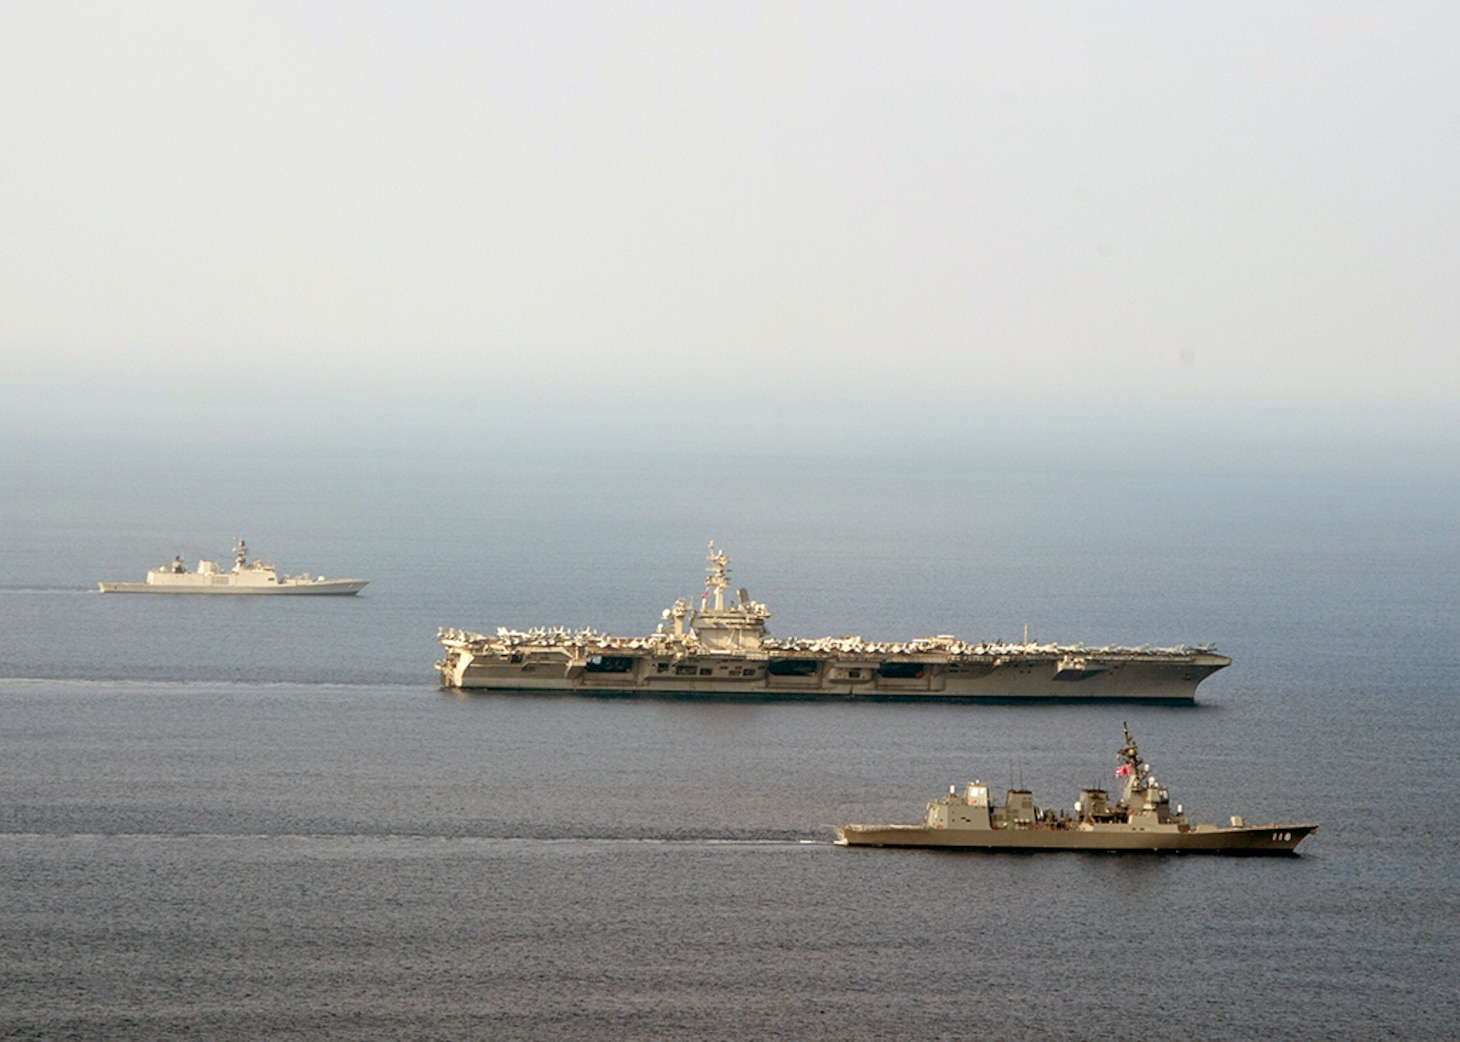 U.S. Navy official File Photo: INDIAN OCEAN (Oct. 16, 2015) The aircraft carrier USS Theodore Roosevelt (CVN 71), Japanese Maritime Self-Defense destroyer Fuyuzuki and Indian Shivalik-class frigate Shivalik transit into formation during a photo exercise as a part of Exercise Malabar 2015. Malabar is a continuing series of complex, high-end war fighting exercises conducted to advance multi-national maritime relationships and mutual security. Theodore Roosevelt is operating in the U.S. 7th Fleet area of operations as part of a worldwide deployment en route toits new homeport in San Diego to complete a three-carrier homeport shift.